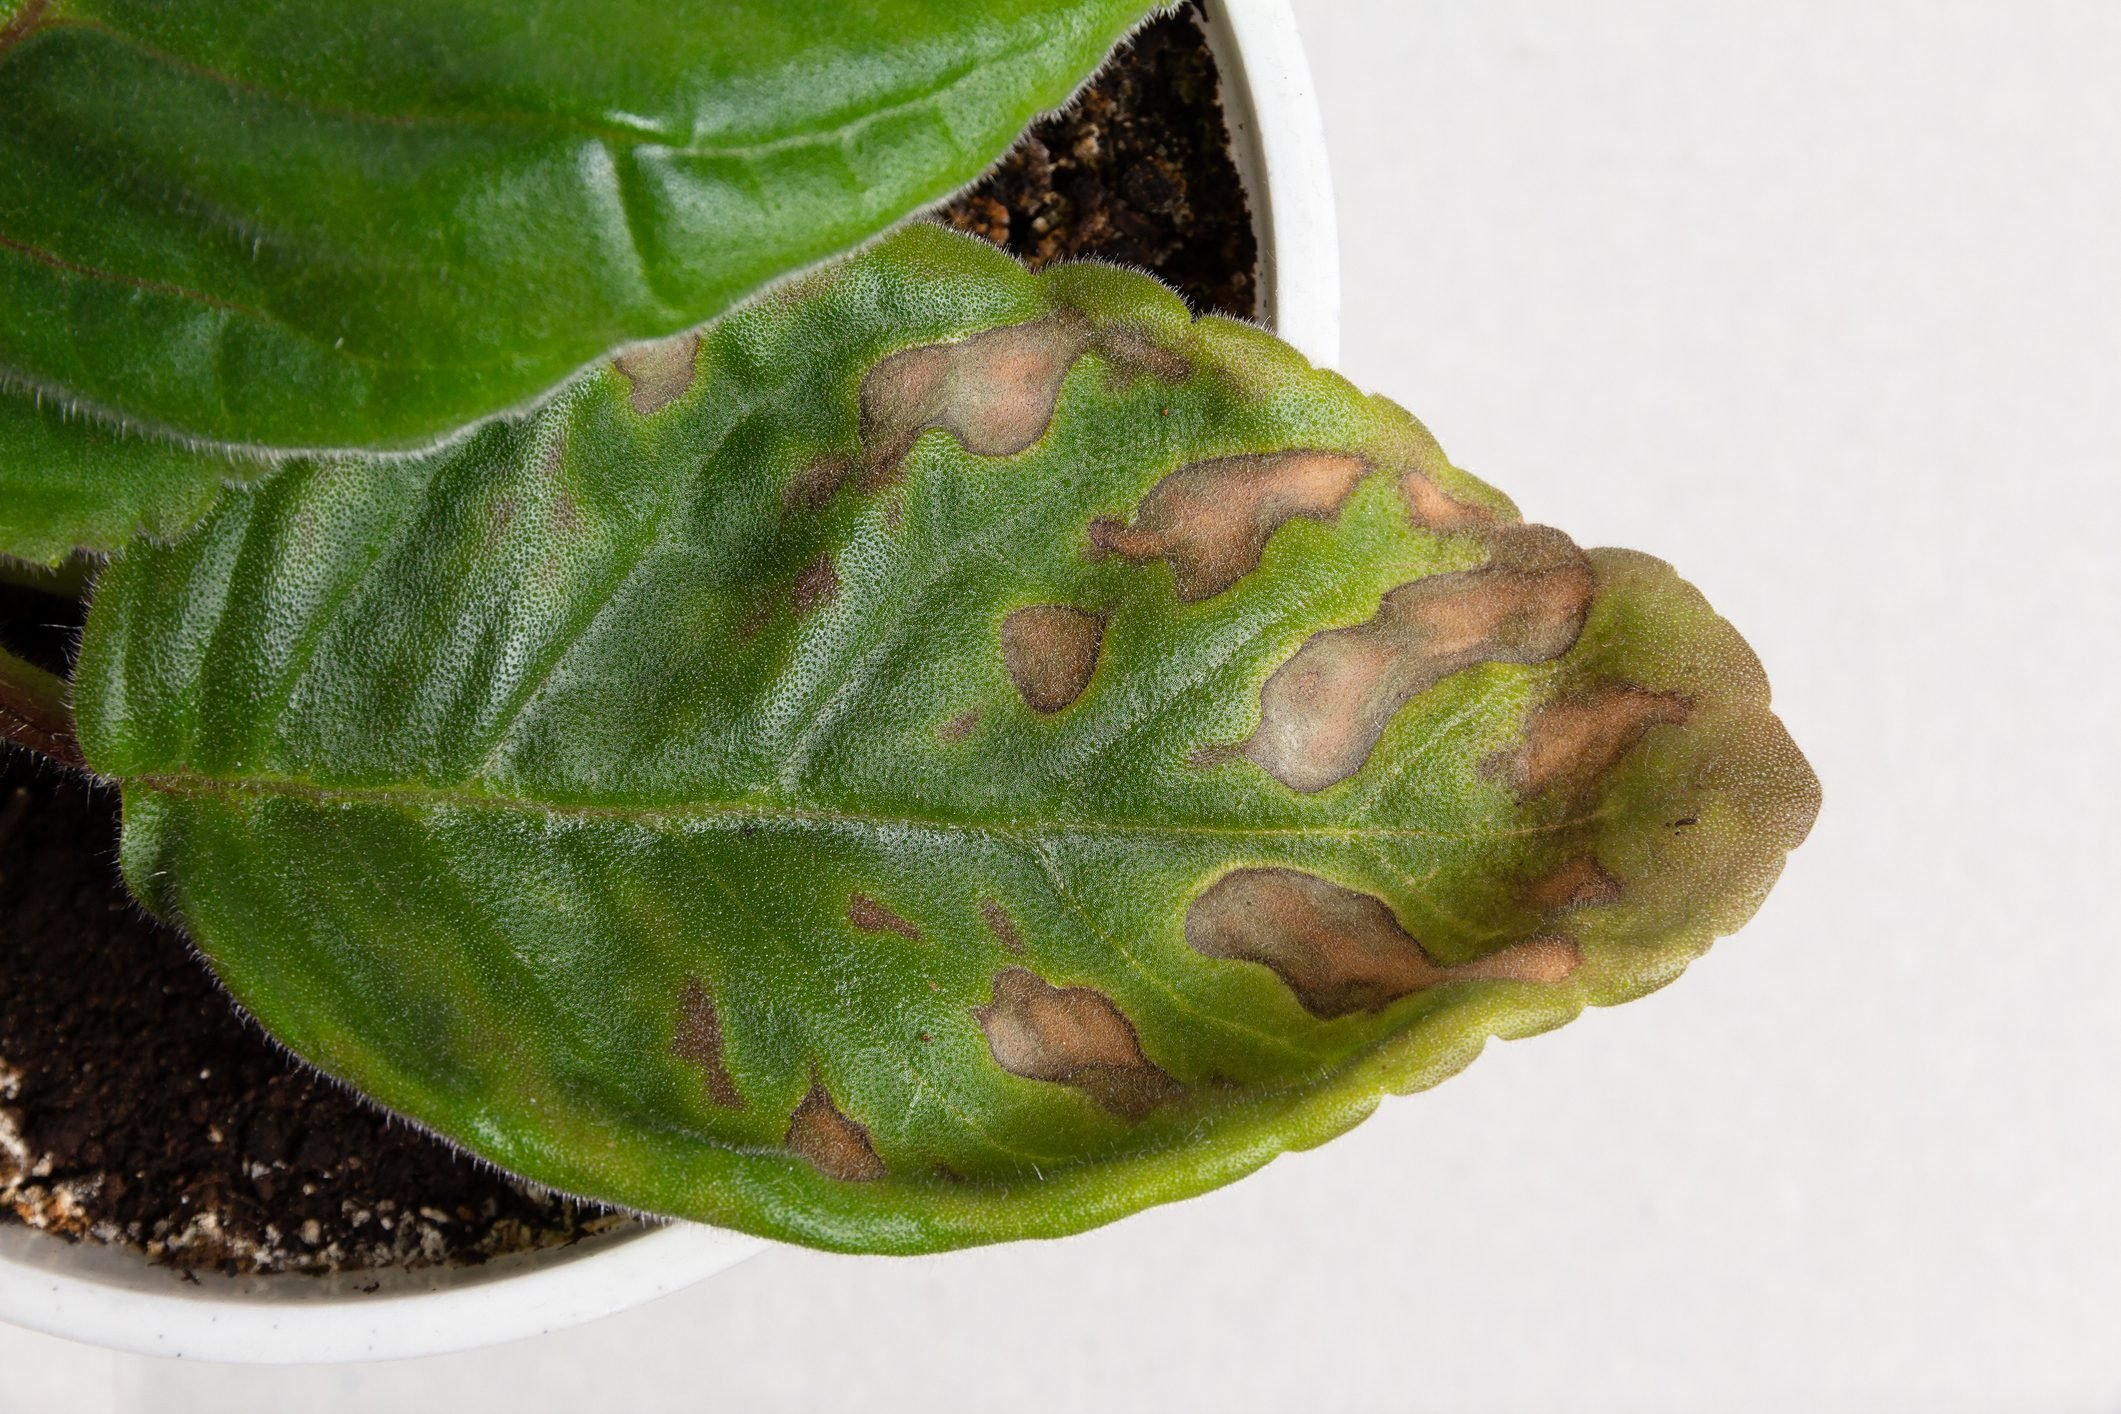 Spots on the green leaf of a houseplant wisteria. Home plant diseases